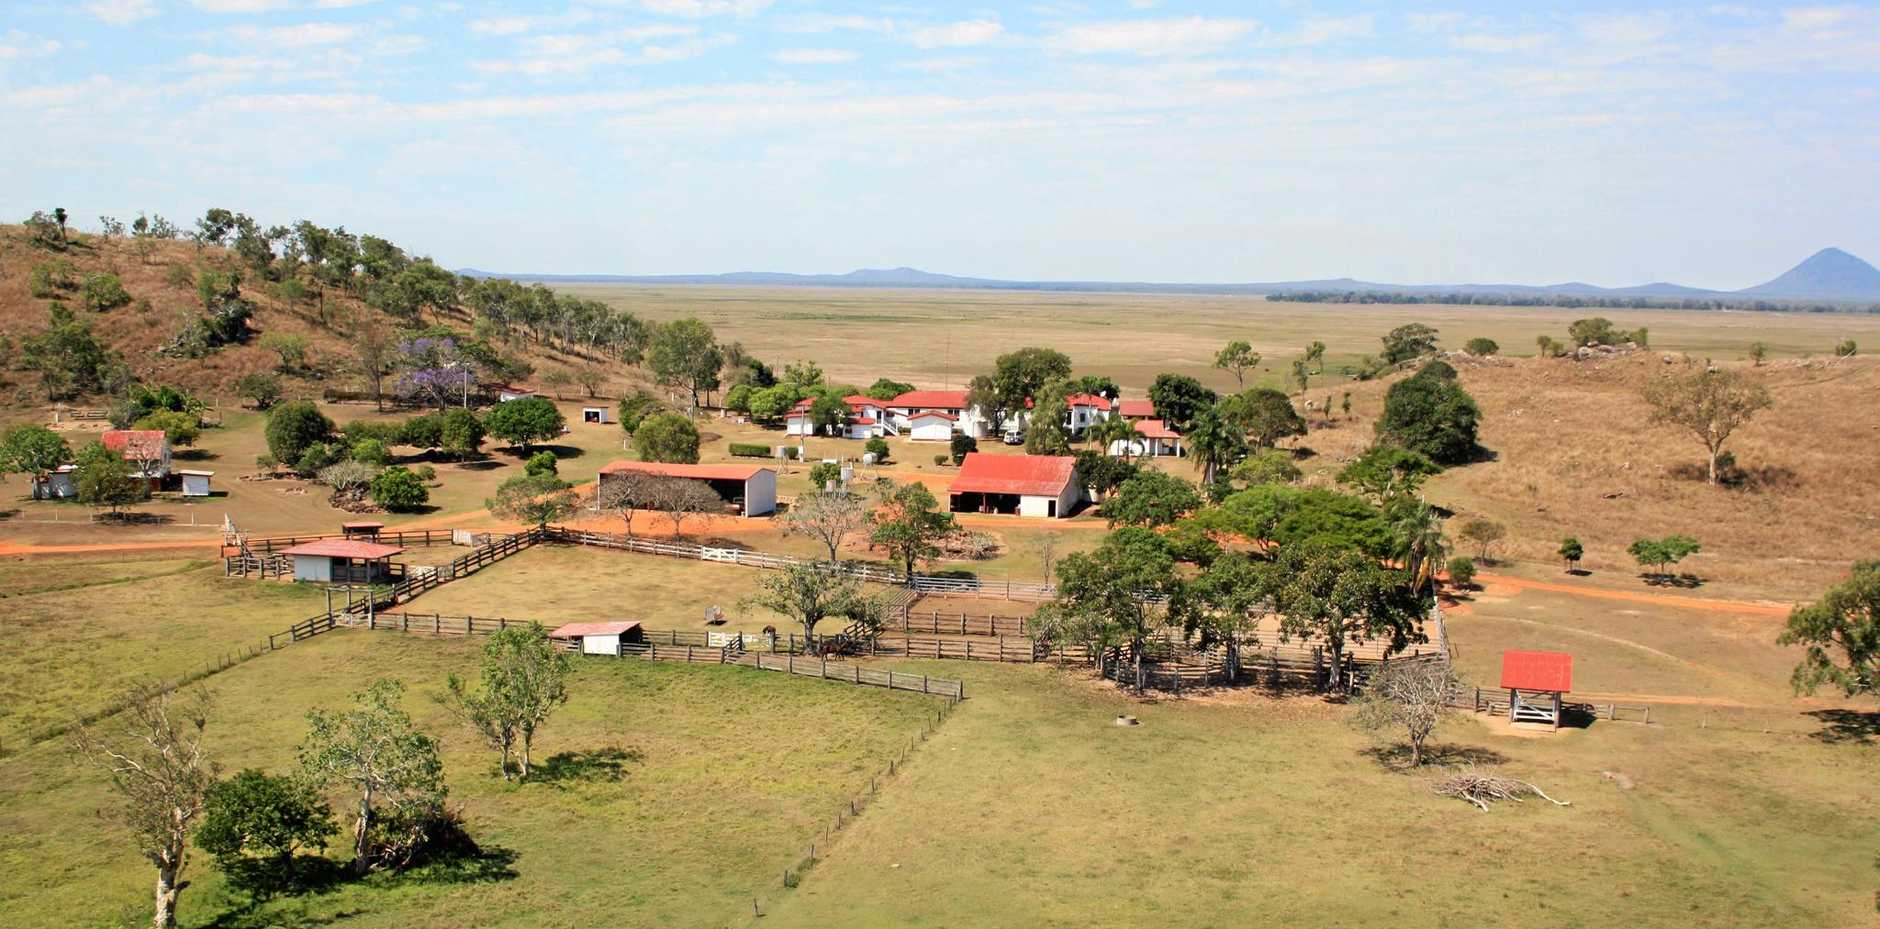 HOME SWEET HOM: An aerial view of the homestead at Toorilla Plains which runs 2,500 head of cattle. LEFT: Craig and Latisha Mace with their two children Will and Mekensi in their younger days .